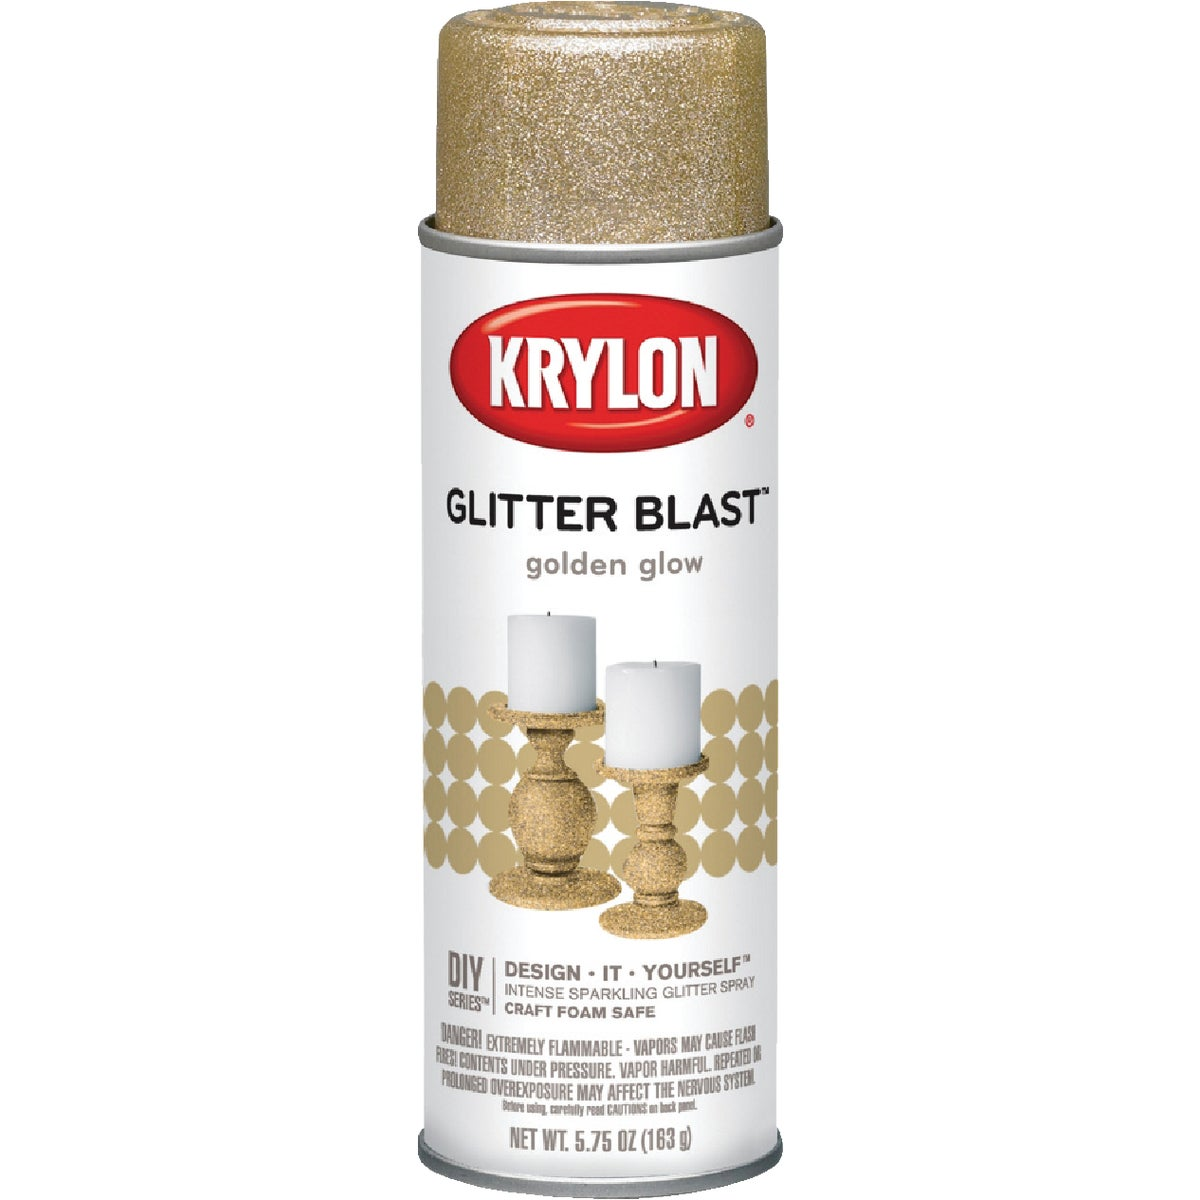 GOLDEN FLW GLITTER SPRAY - K03801000 by Krylon/consumer Div